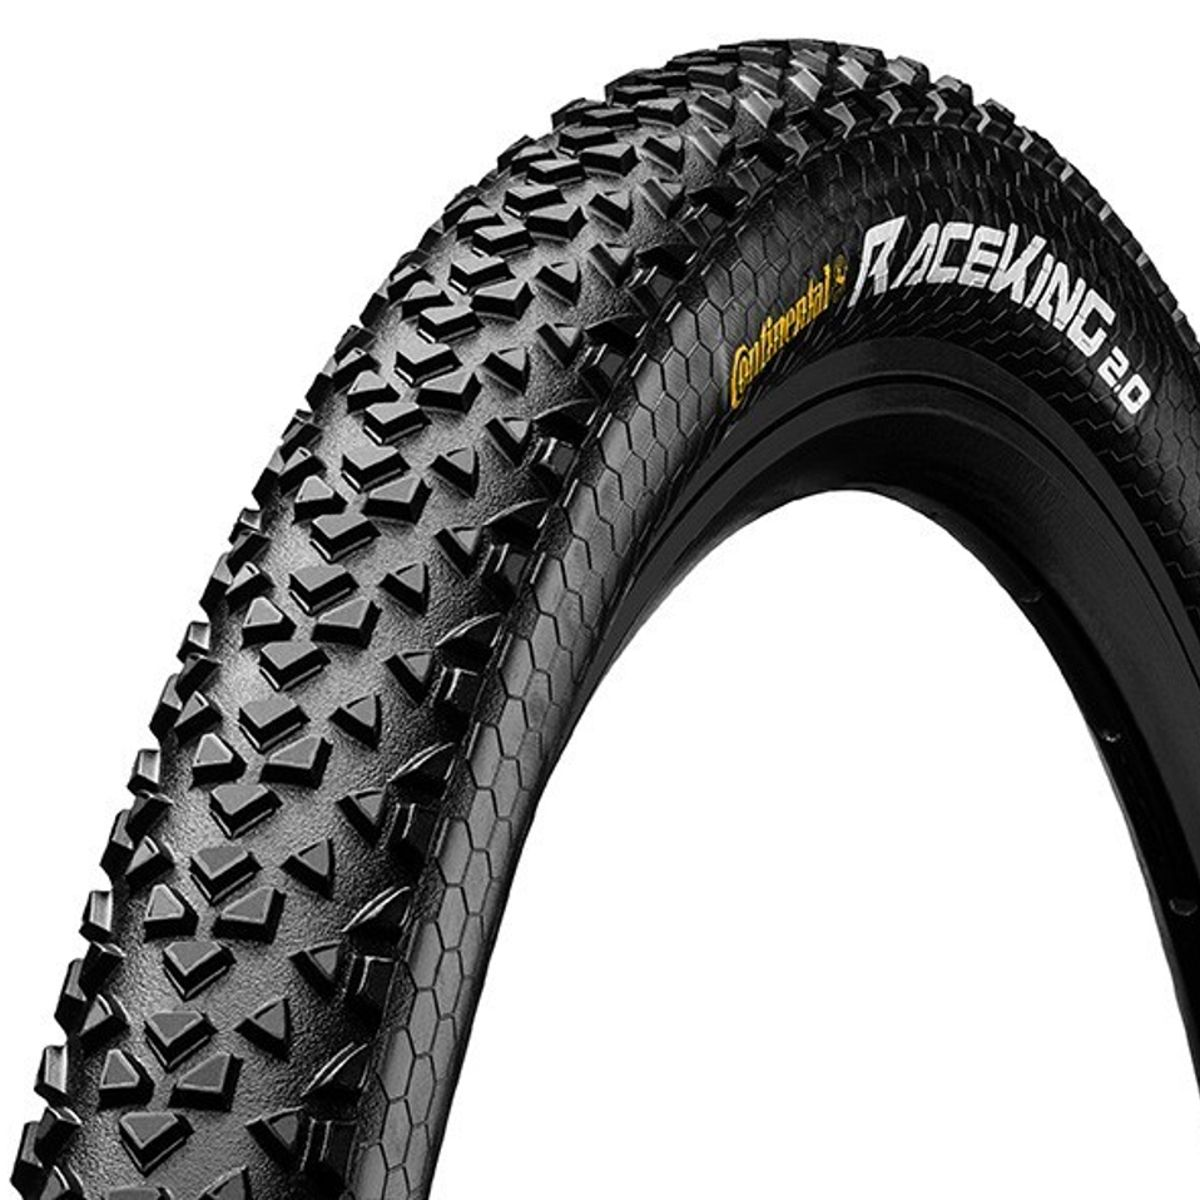 CONTINENTAL Black bicycle tire gravity 26x2.30